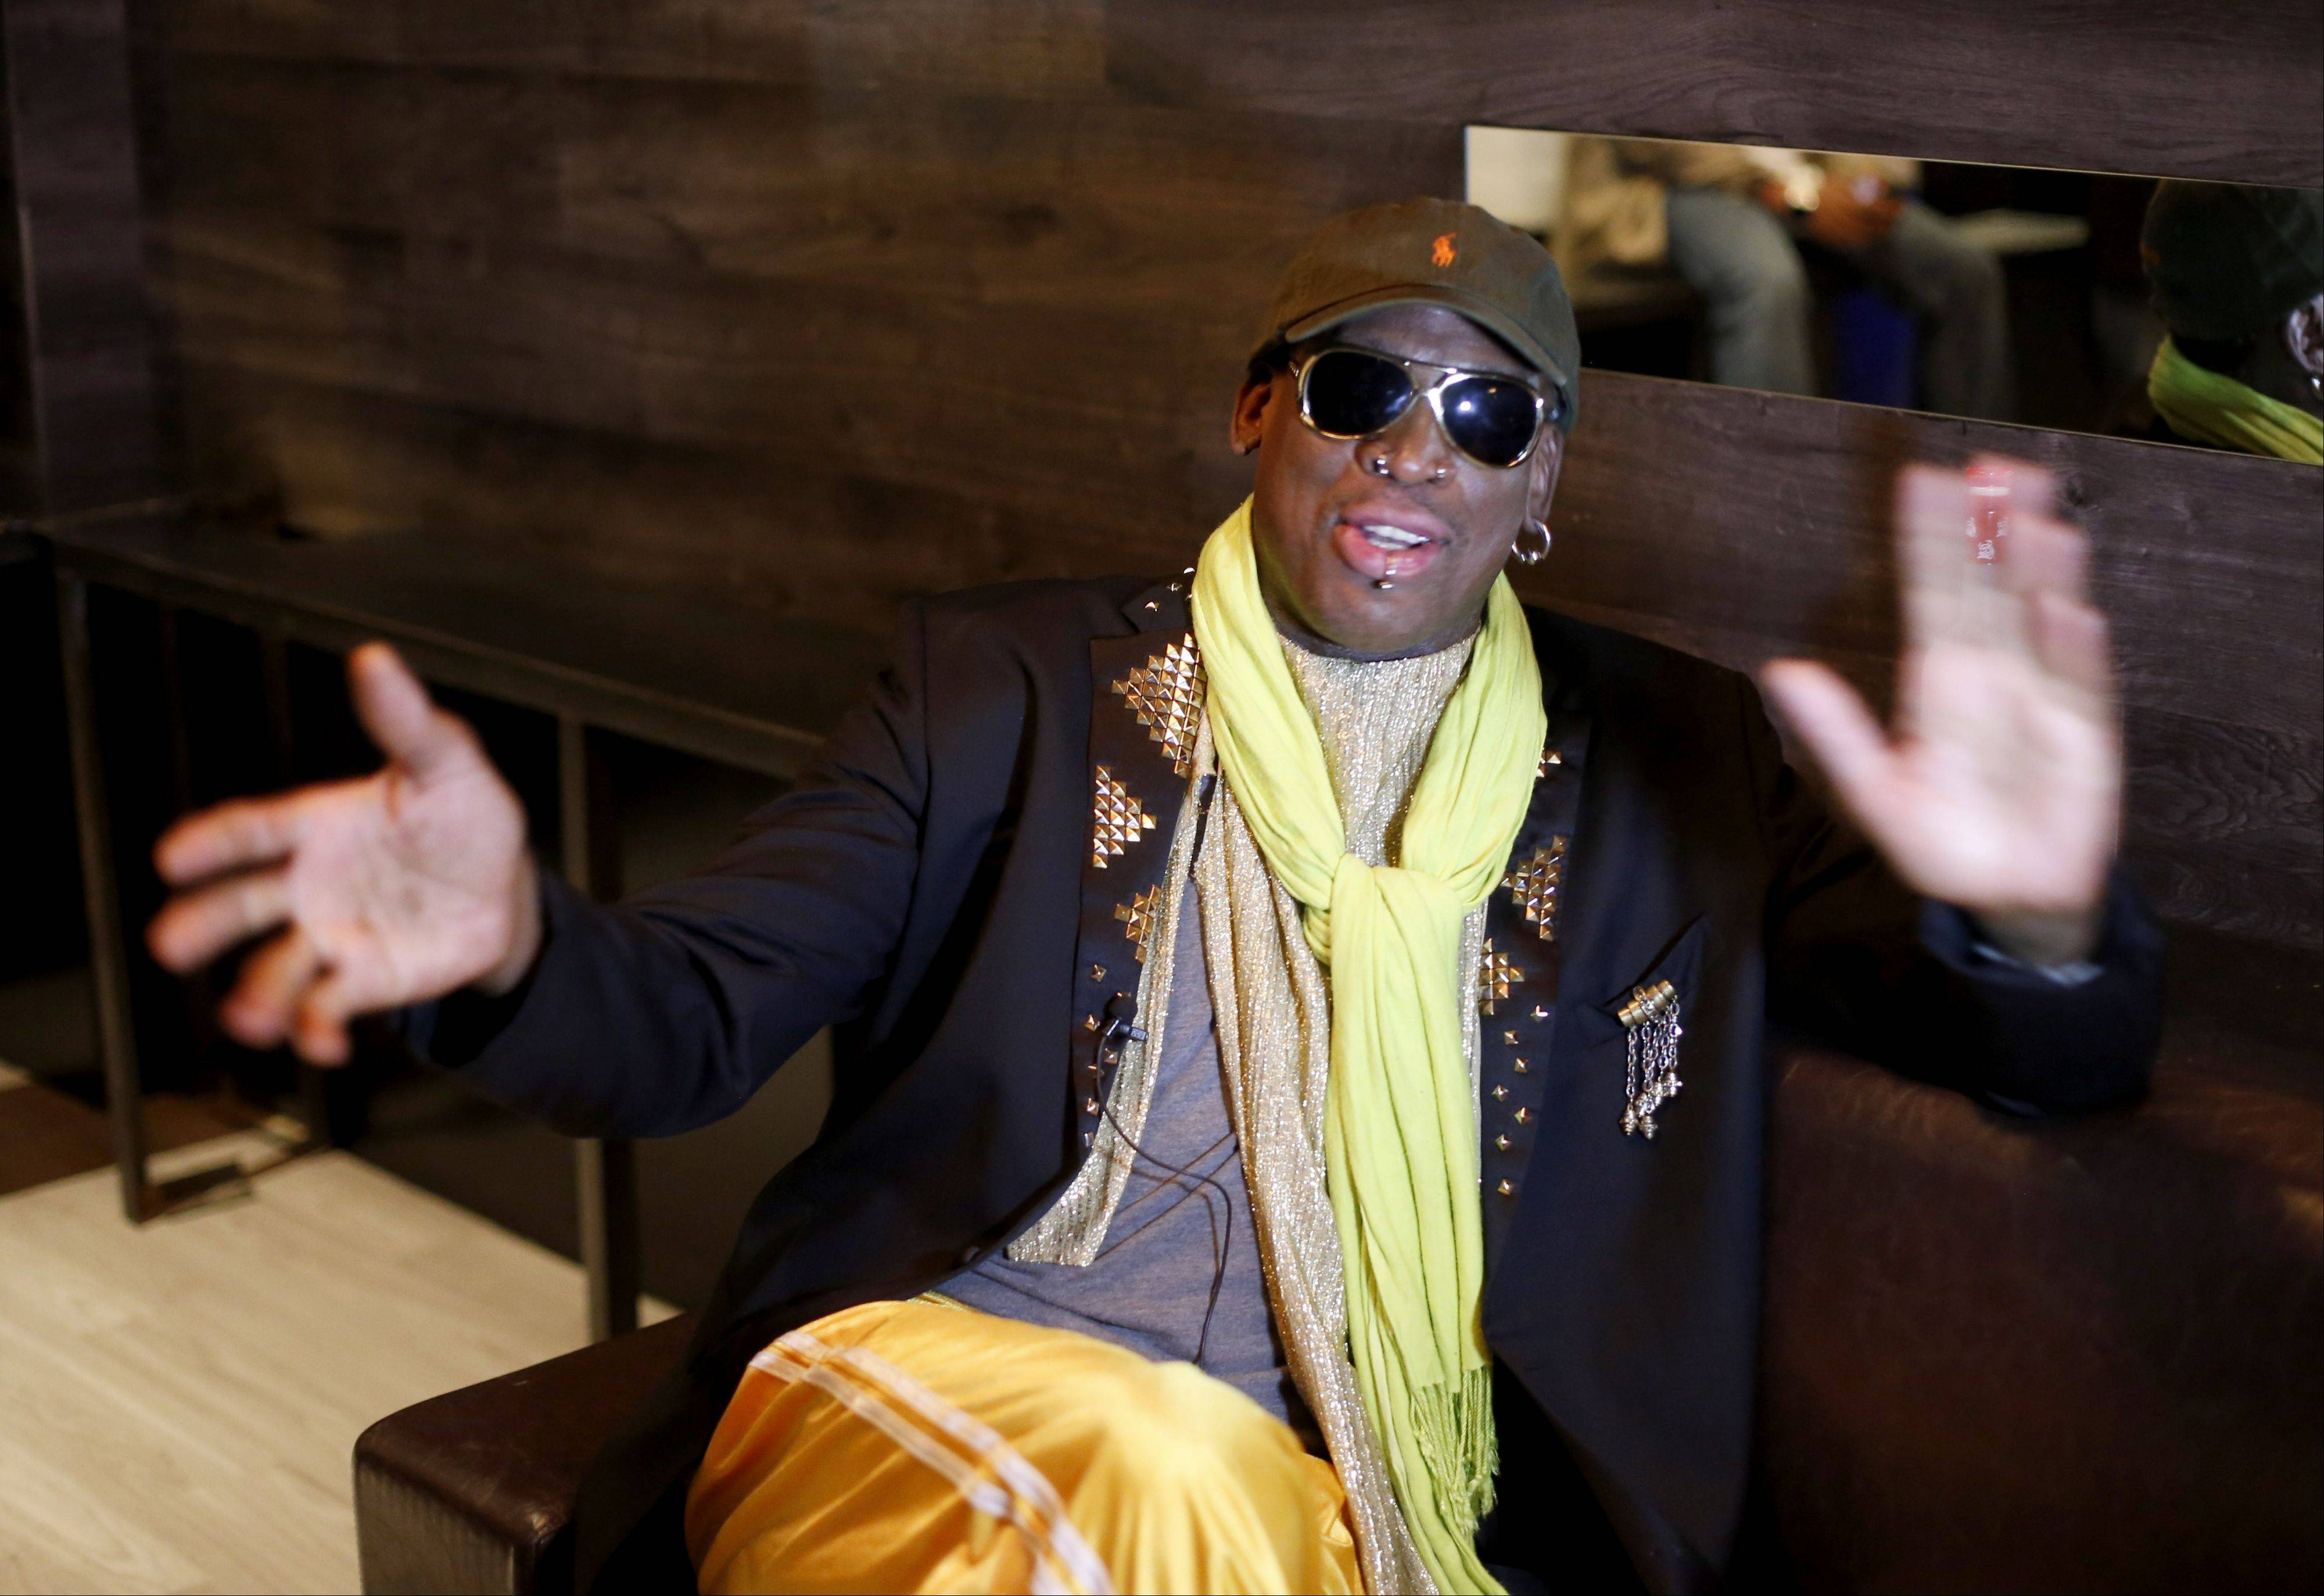 In this Thursday, Nov. 21, 2013 photo, Dennis Rodman gestues during an interview after a promotional event to pitch a vodka brand in Chicago. Rodman has been named GQ�s least influential celebrity of 2013.